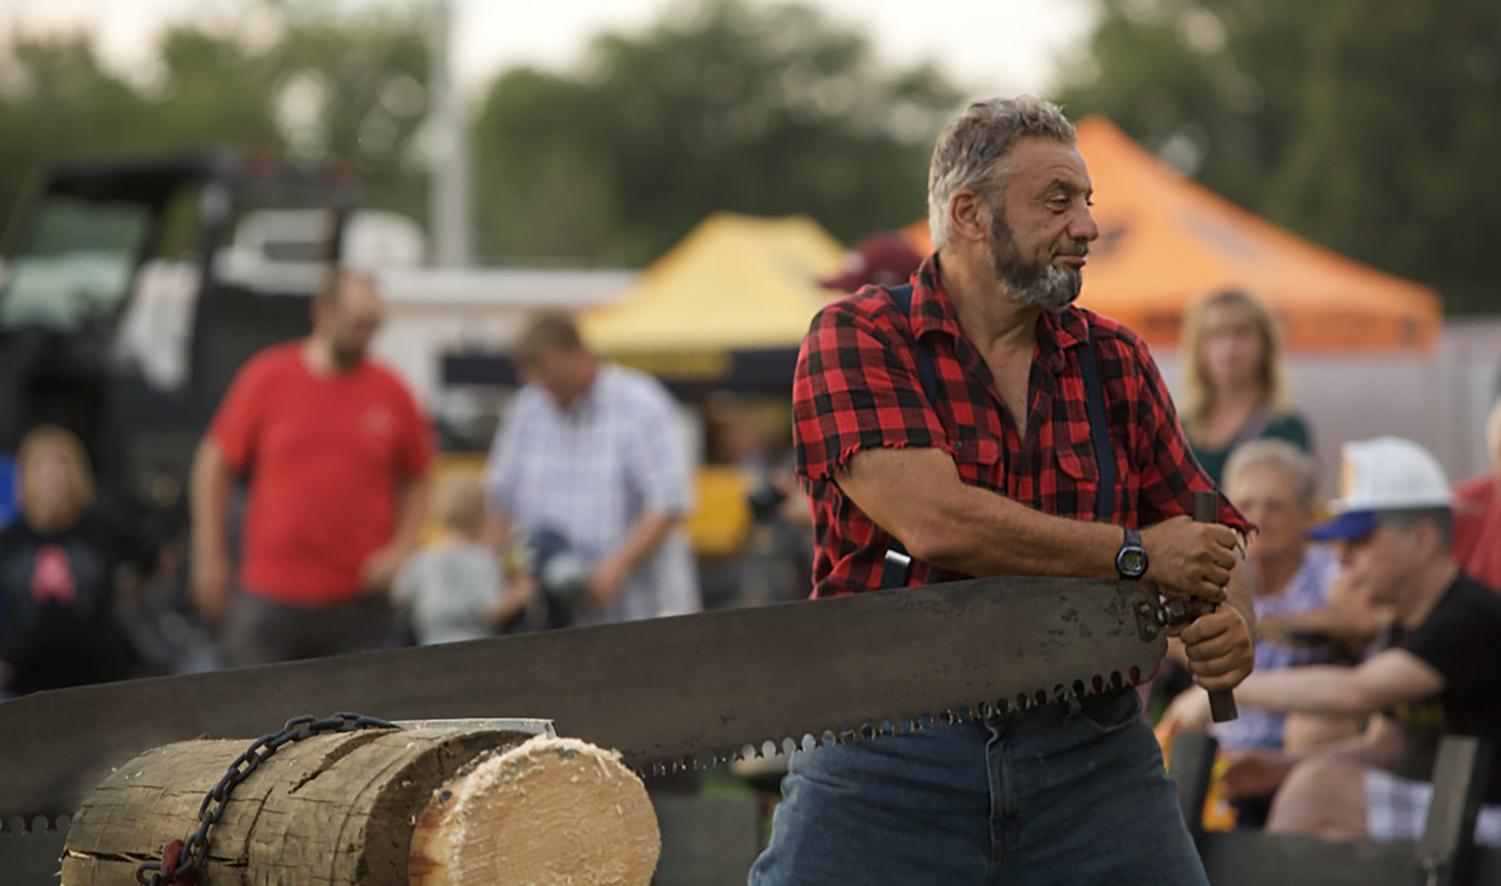 Fred+Satkily+saws+a+piece+of+wood+in+a+lumberjack+show%2C+Friday%2C+Aug.+31%2C+2018%2C+at+the+Du+Quoin+State+Fair.+%28Joey+Sears+%7C+%40Joey_Sears10%29